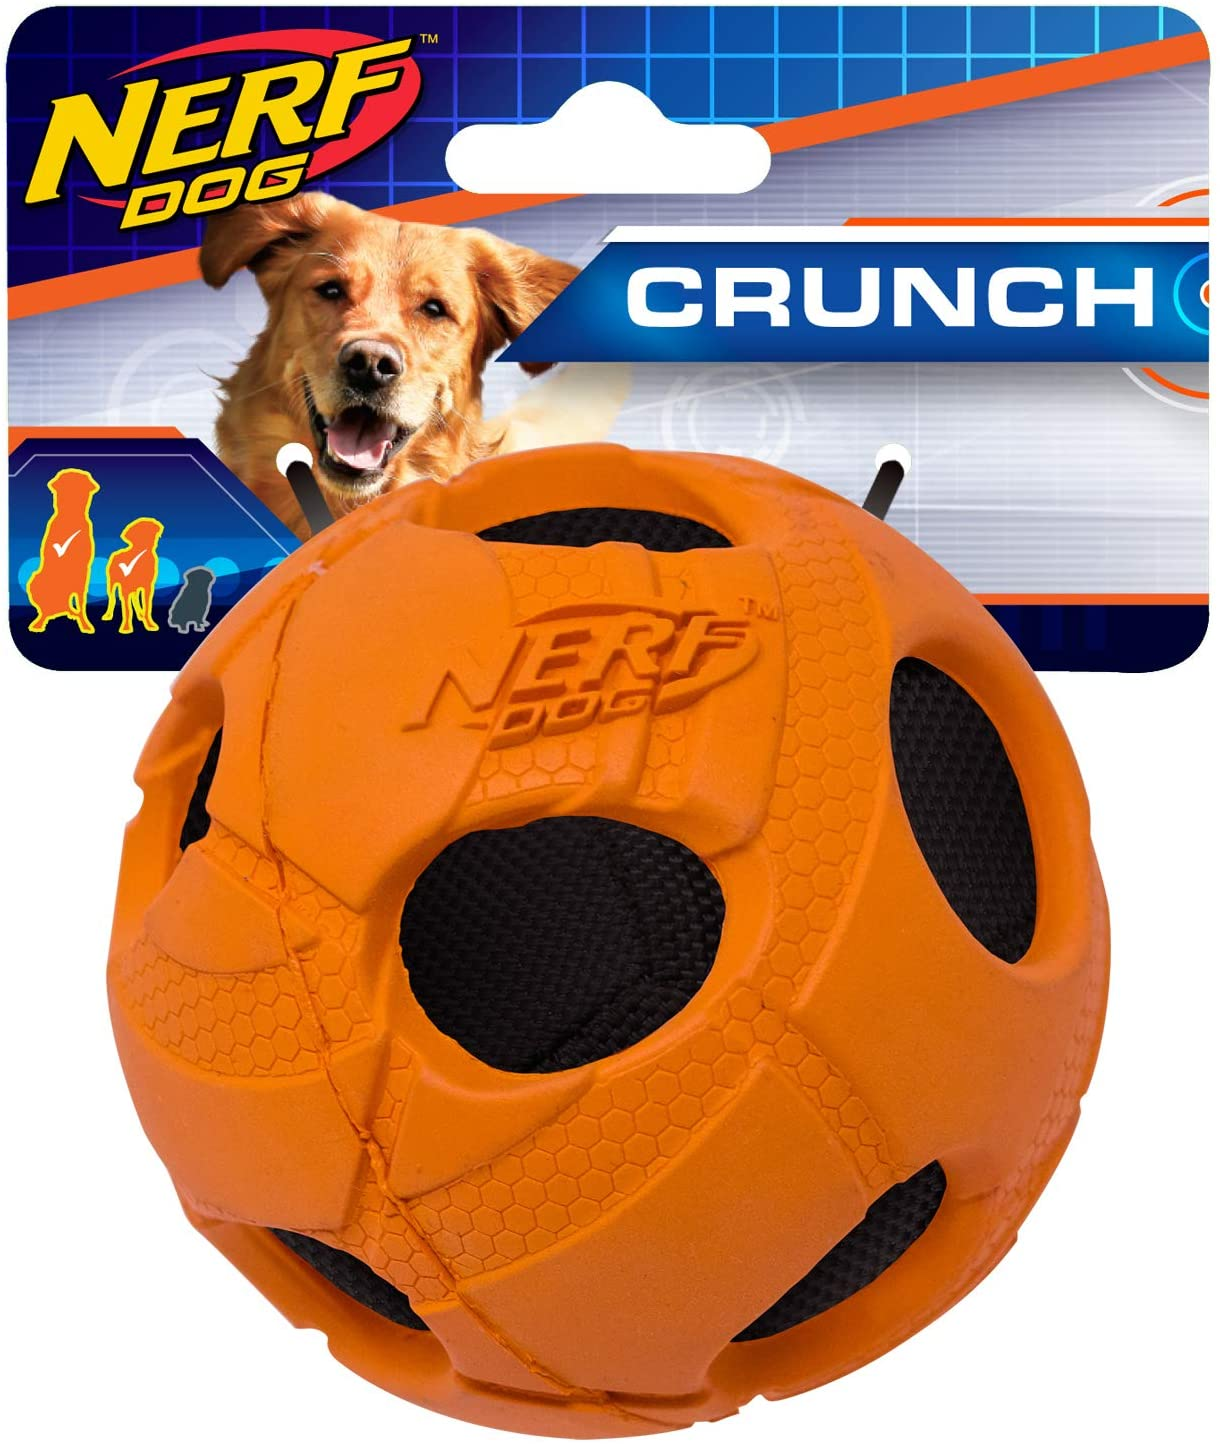 Nerf Dog Bash Ball Dog Toy with Interactive Crunch, Lightweight, Durable and Water Resistant, 3.8 Inches for Small/Medium/Large Breeds, Single Unit, Orange